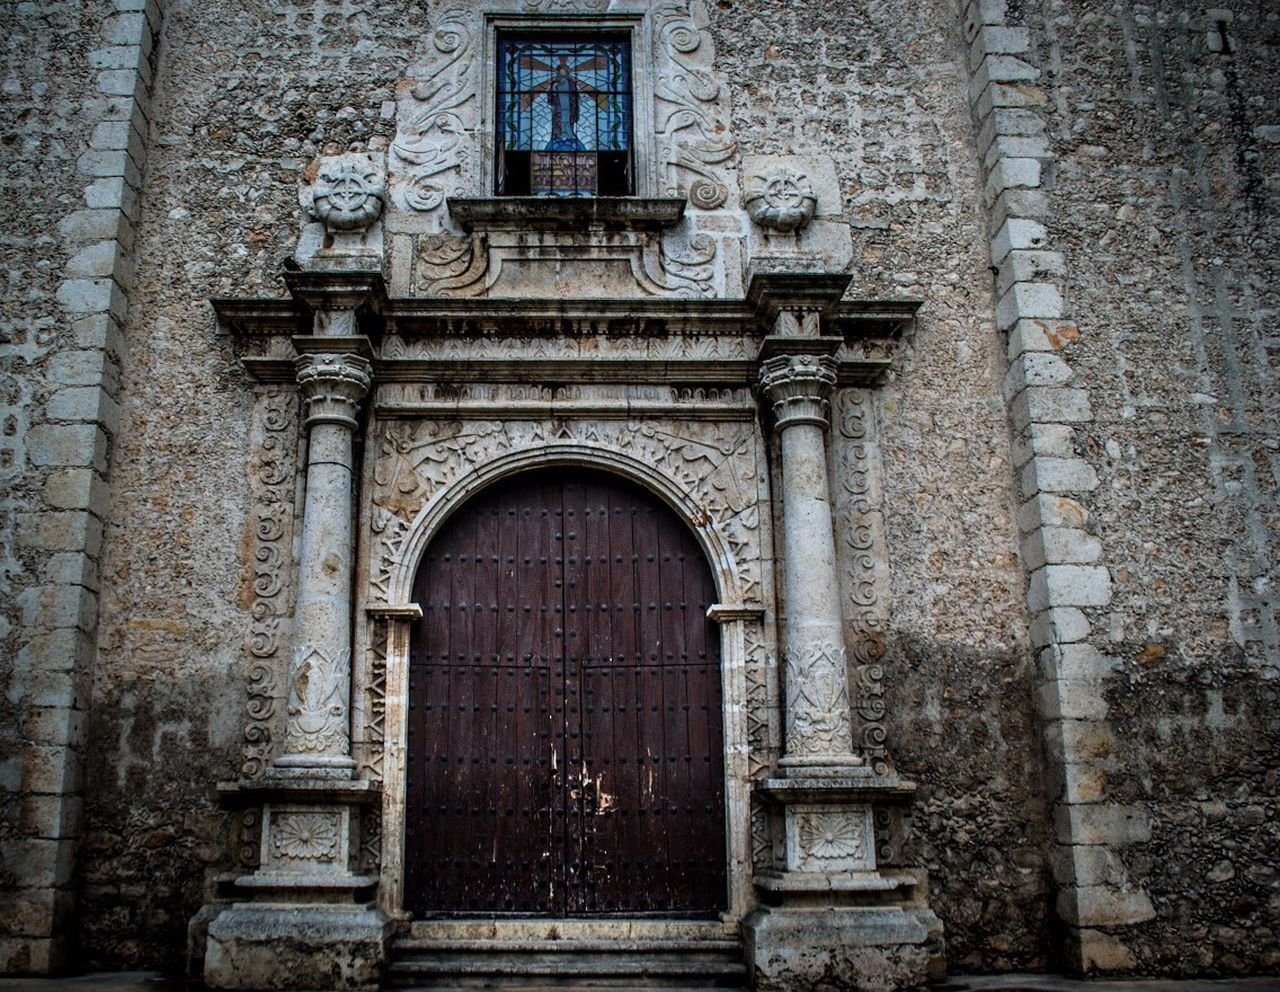 architecture, building exterior, door, history, arch, built structure, day, outdoors, no people, travel destinations, bas relief, facade, sculpture